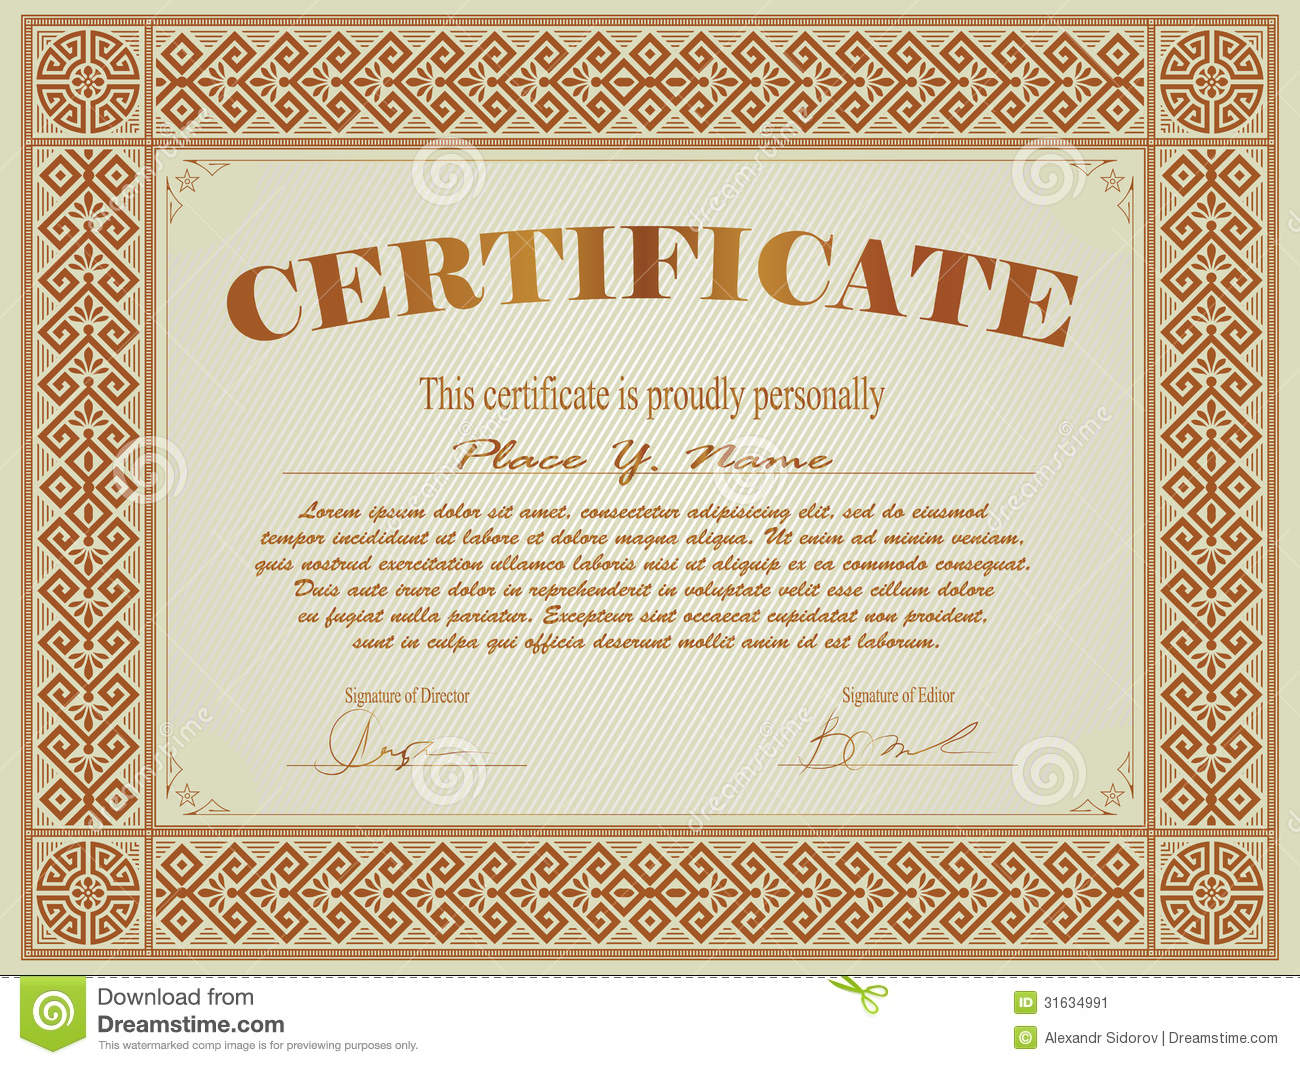 Certificate Template Stock Image - Image: 31634991